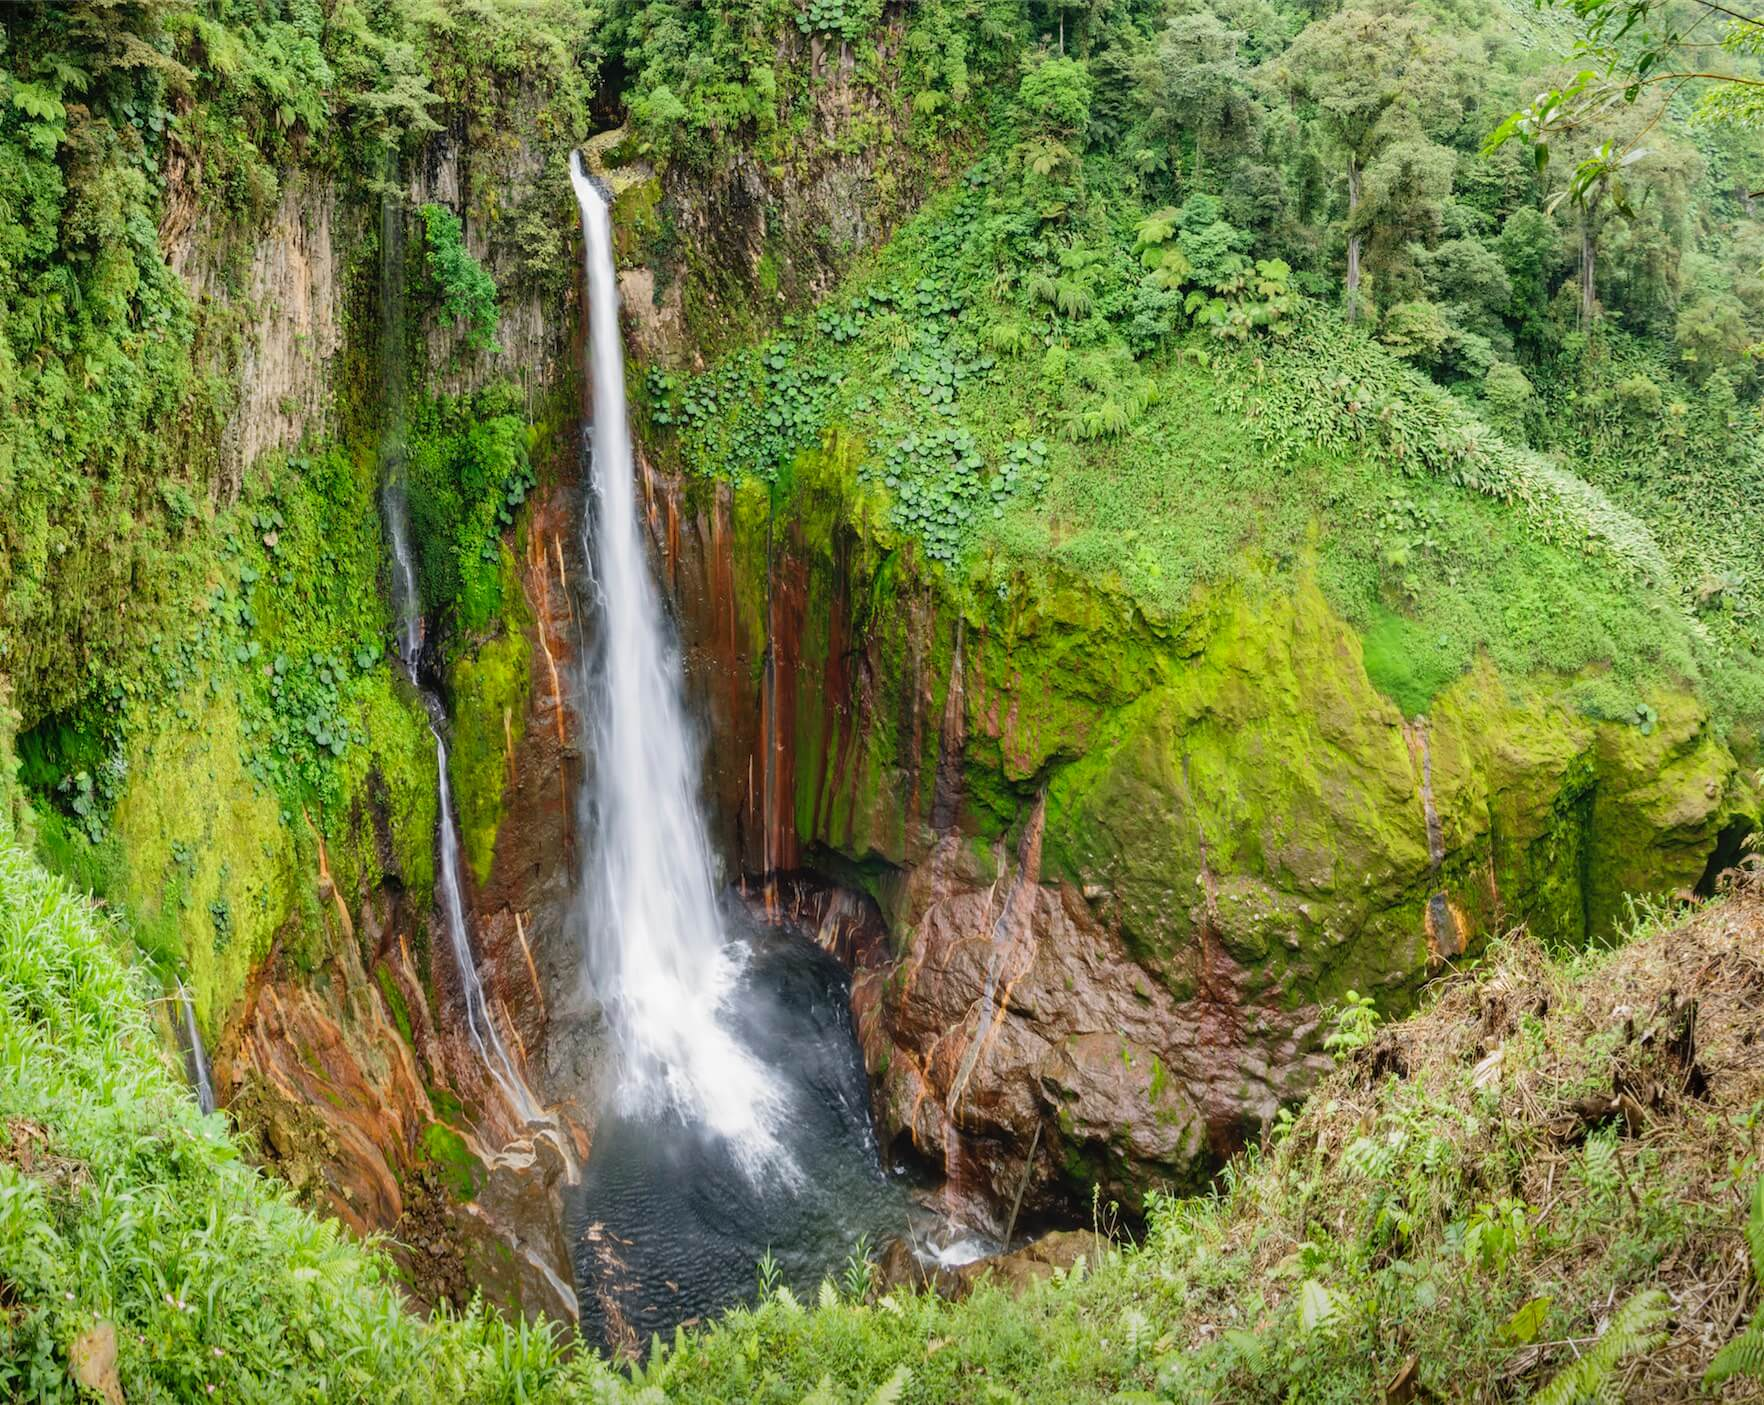 A waterfall flows in a tropical rain forest.